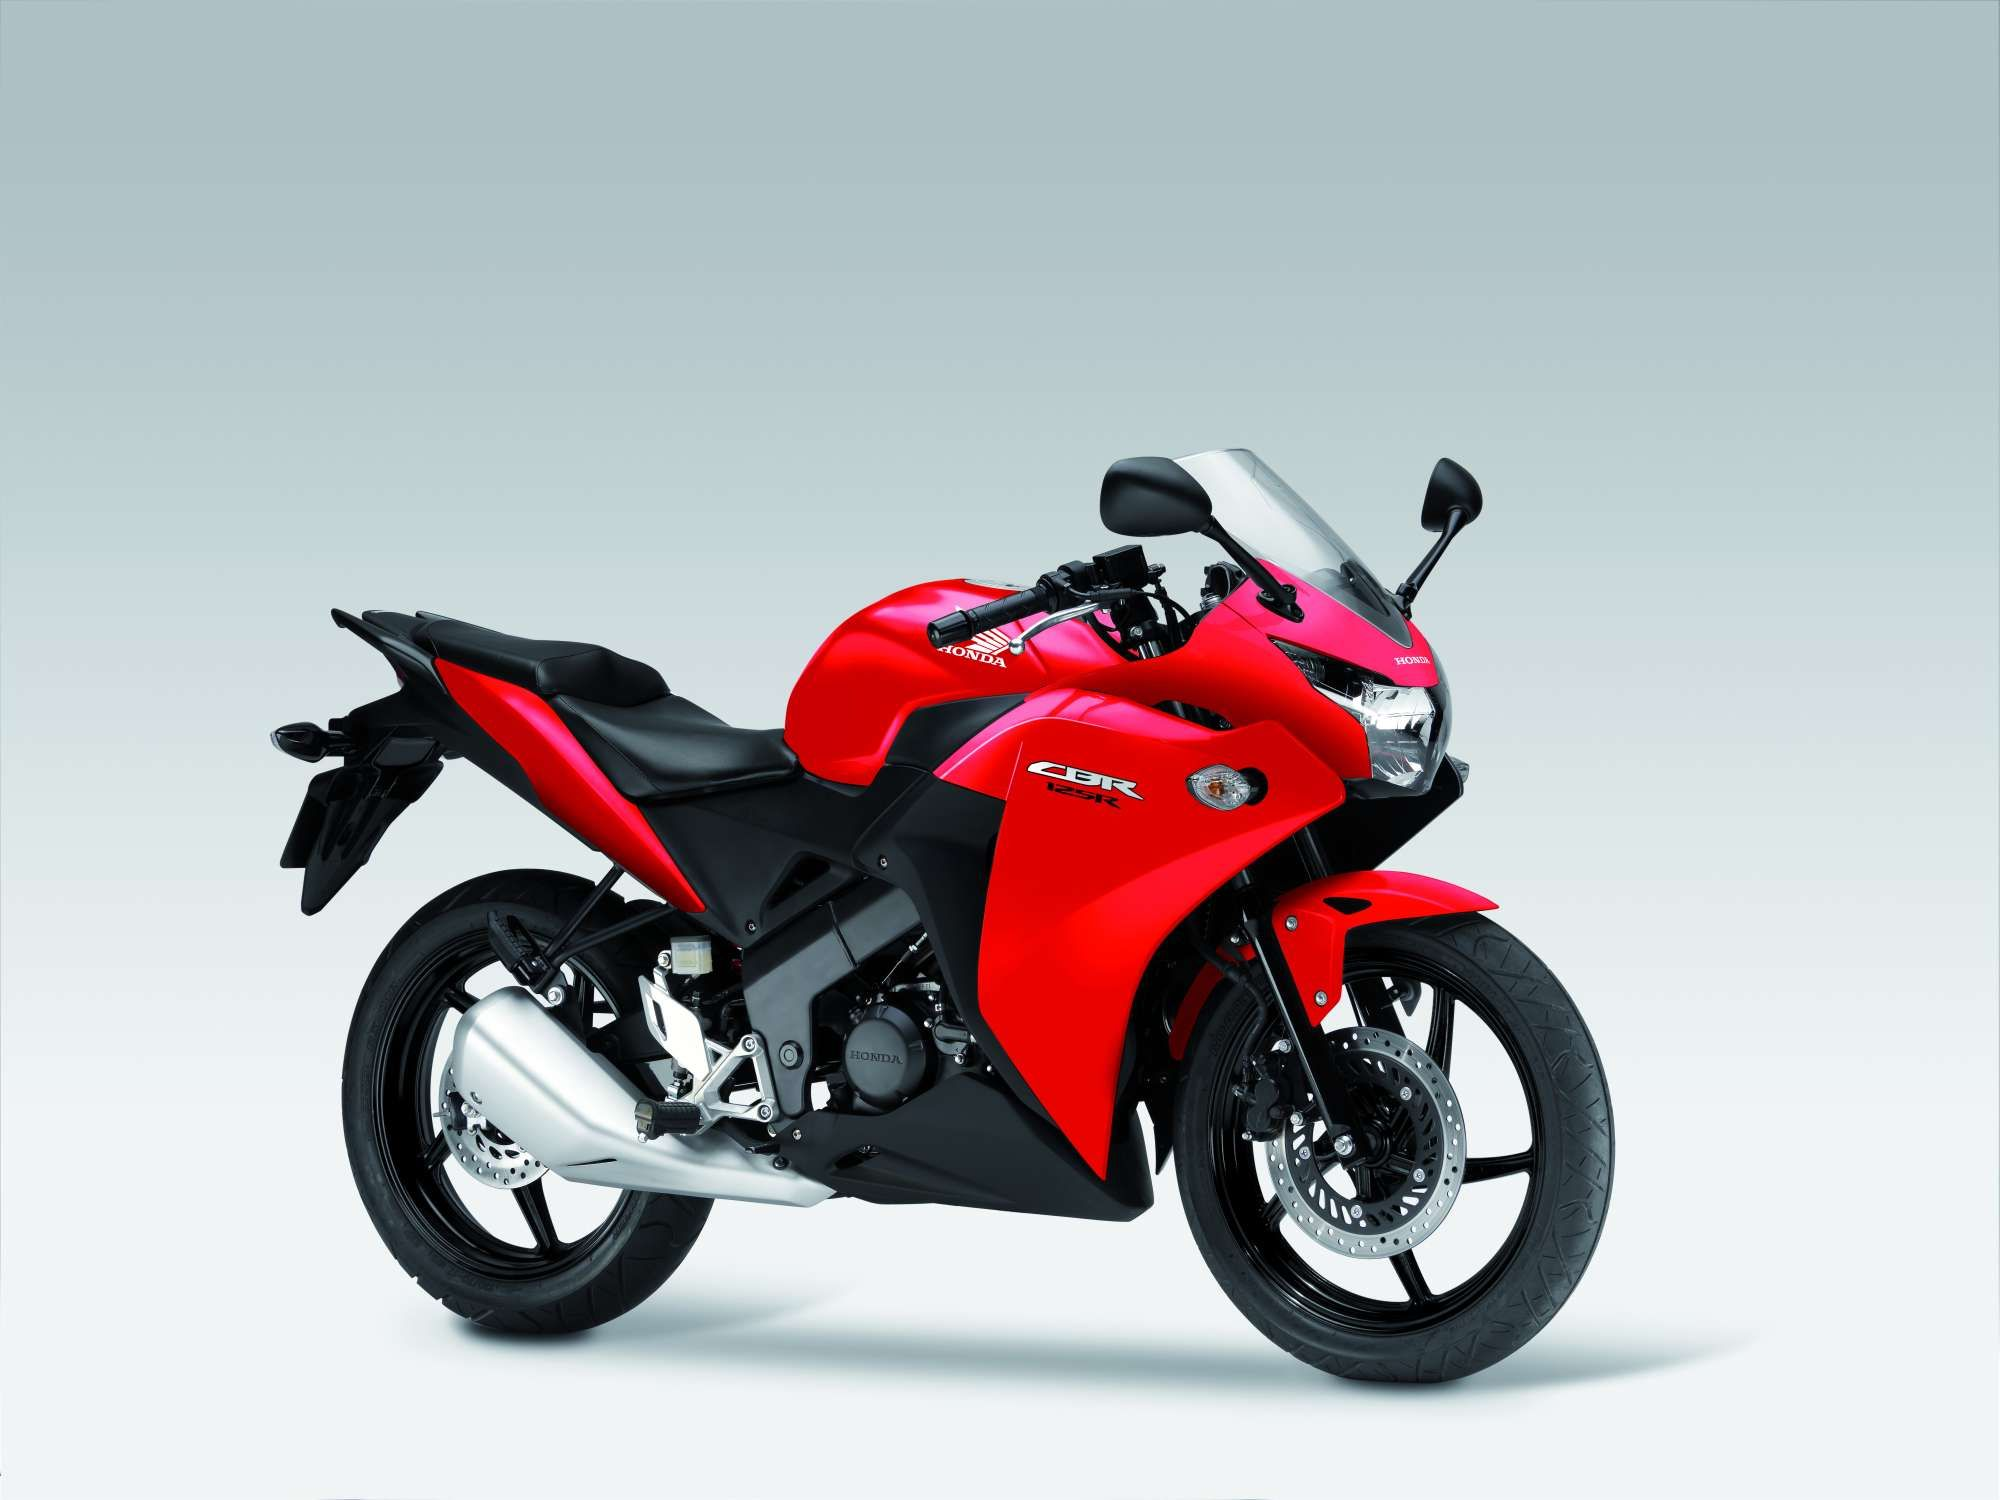 Honda cbr 125 r red motorcycles pinterest honda cbr 125 r red fandeluxe Choice Image